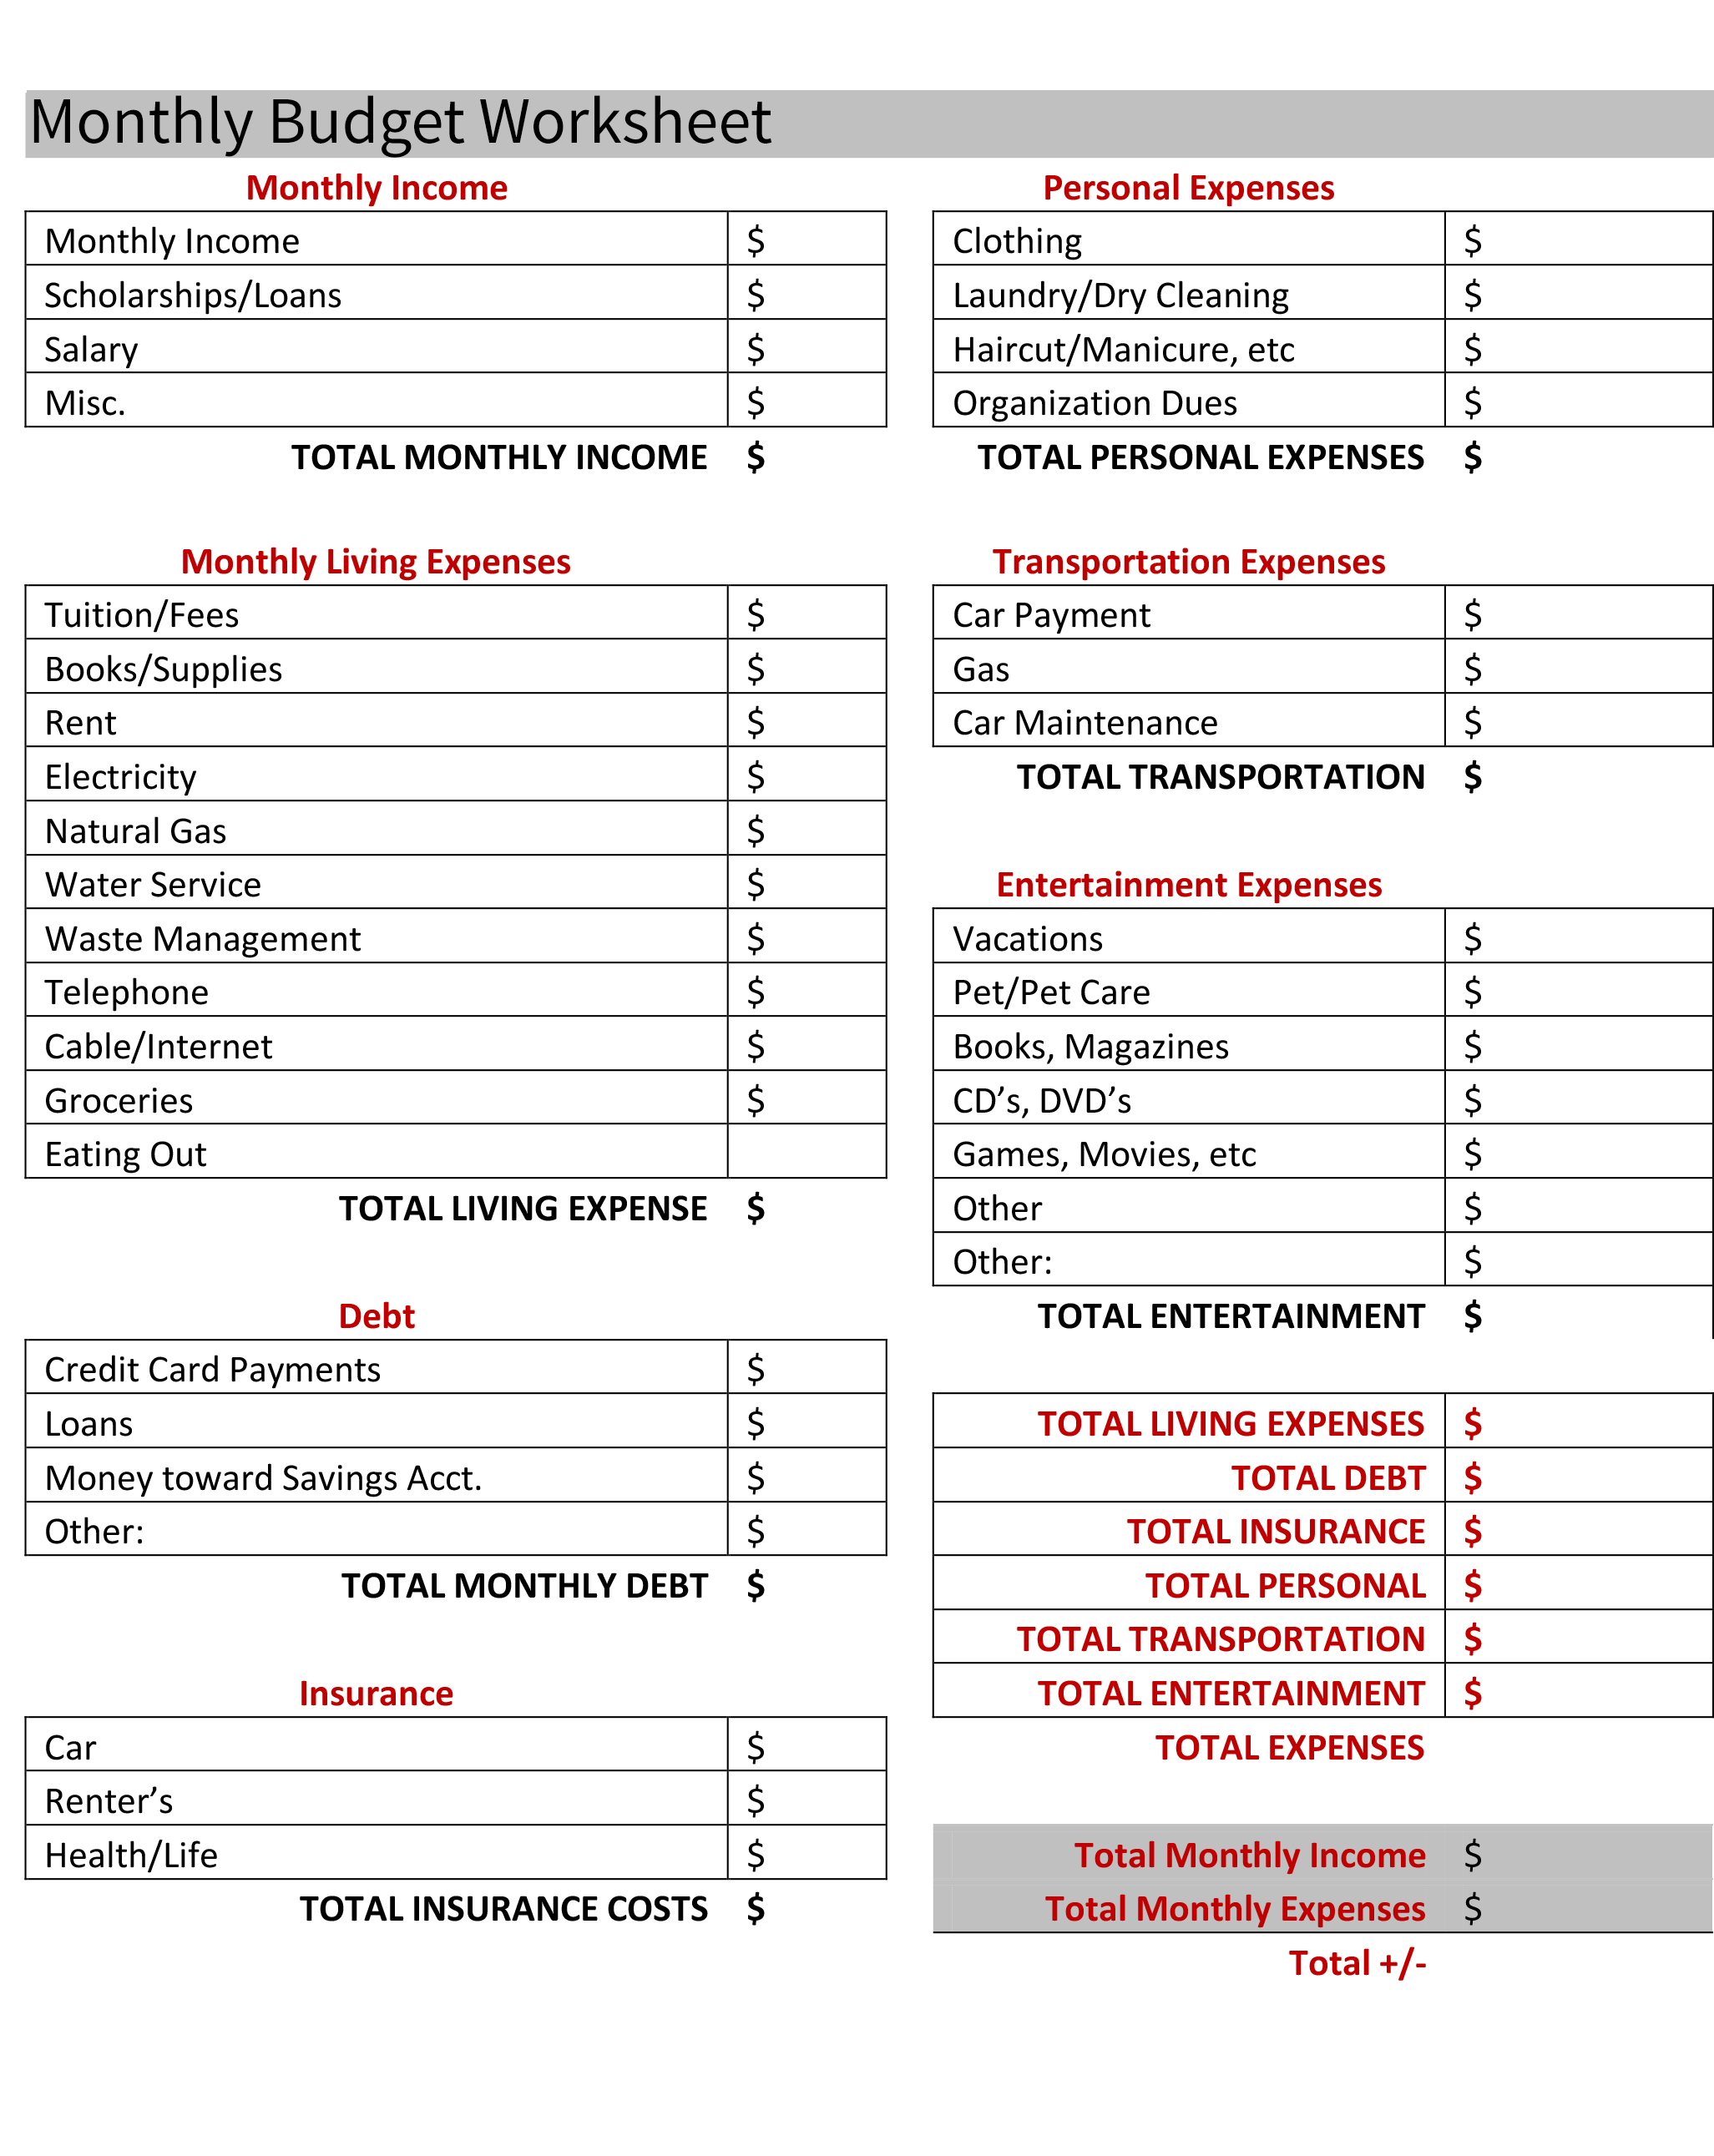 Apartment Expenses Spreadsheet Within Budgeting For Your First Apartment [Free Budget Worksheet]  Poplar Apartment Expenses Spreadsheet Printable Spreadshee Printable Spreadshee apartment expenses spreadsheet